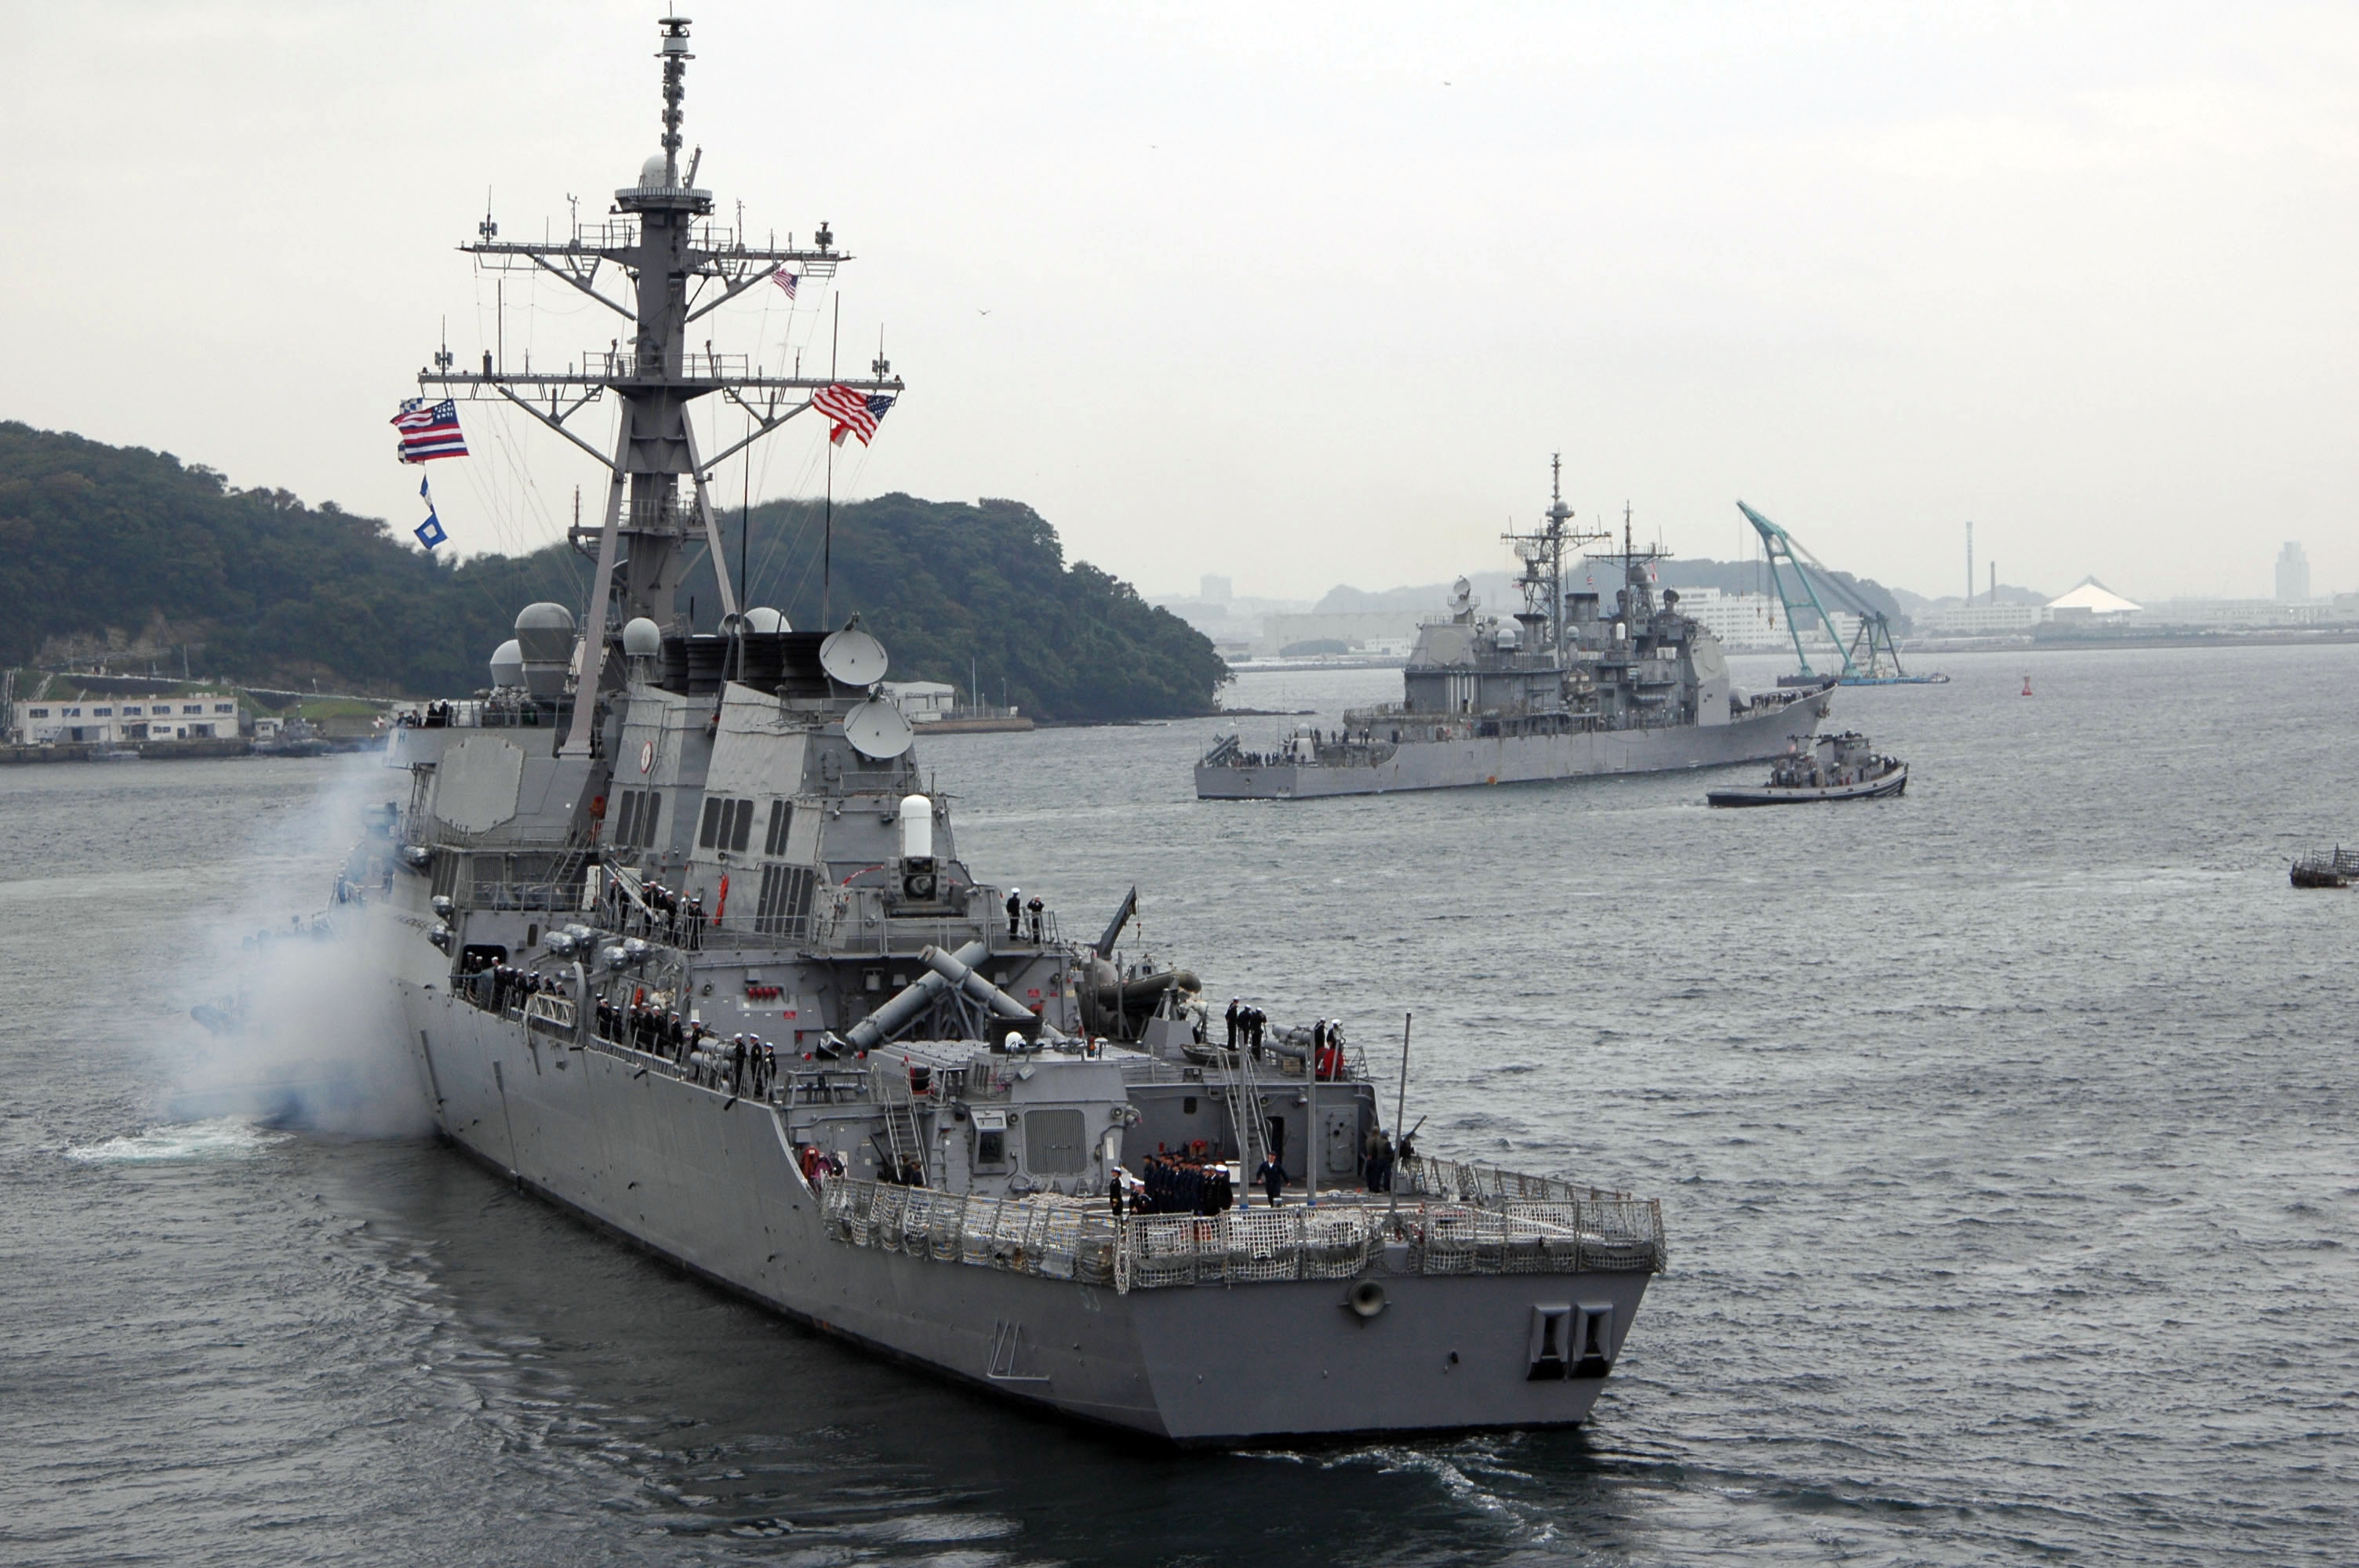 US_Navy_051011-N-7883G-043_The_guided_missile_destroyer_USS_John_Paul_Jones_%28DDG_53%29_and_the_guided_missile_cruiser_USS_Cowpens_%28CG_63%29_depart_Truman_Bay_for_a_fall_underway_period.jpg